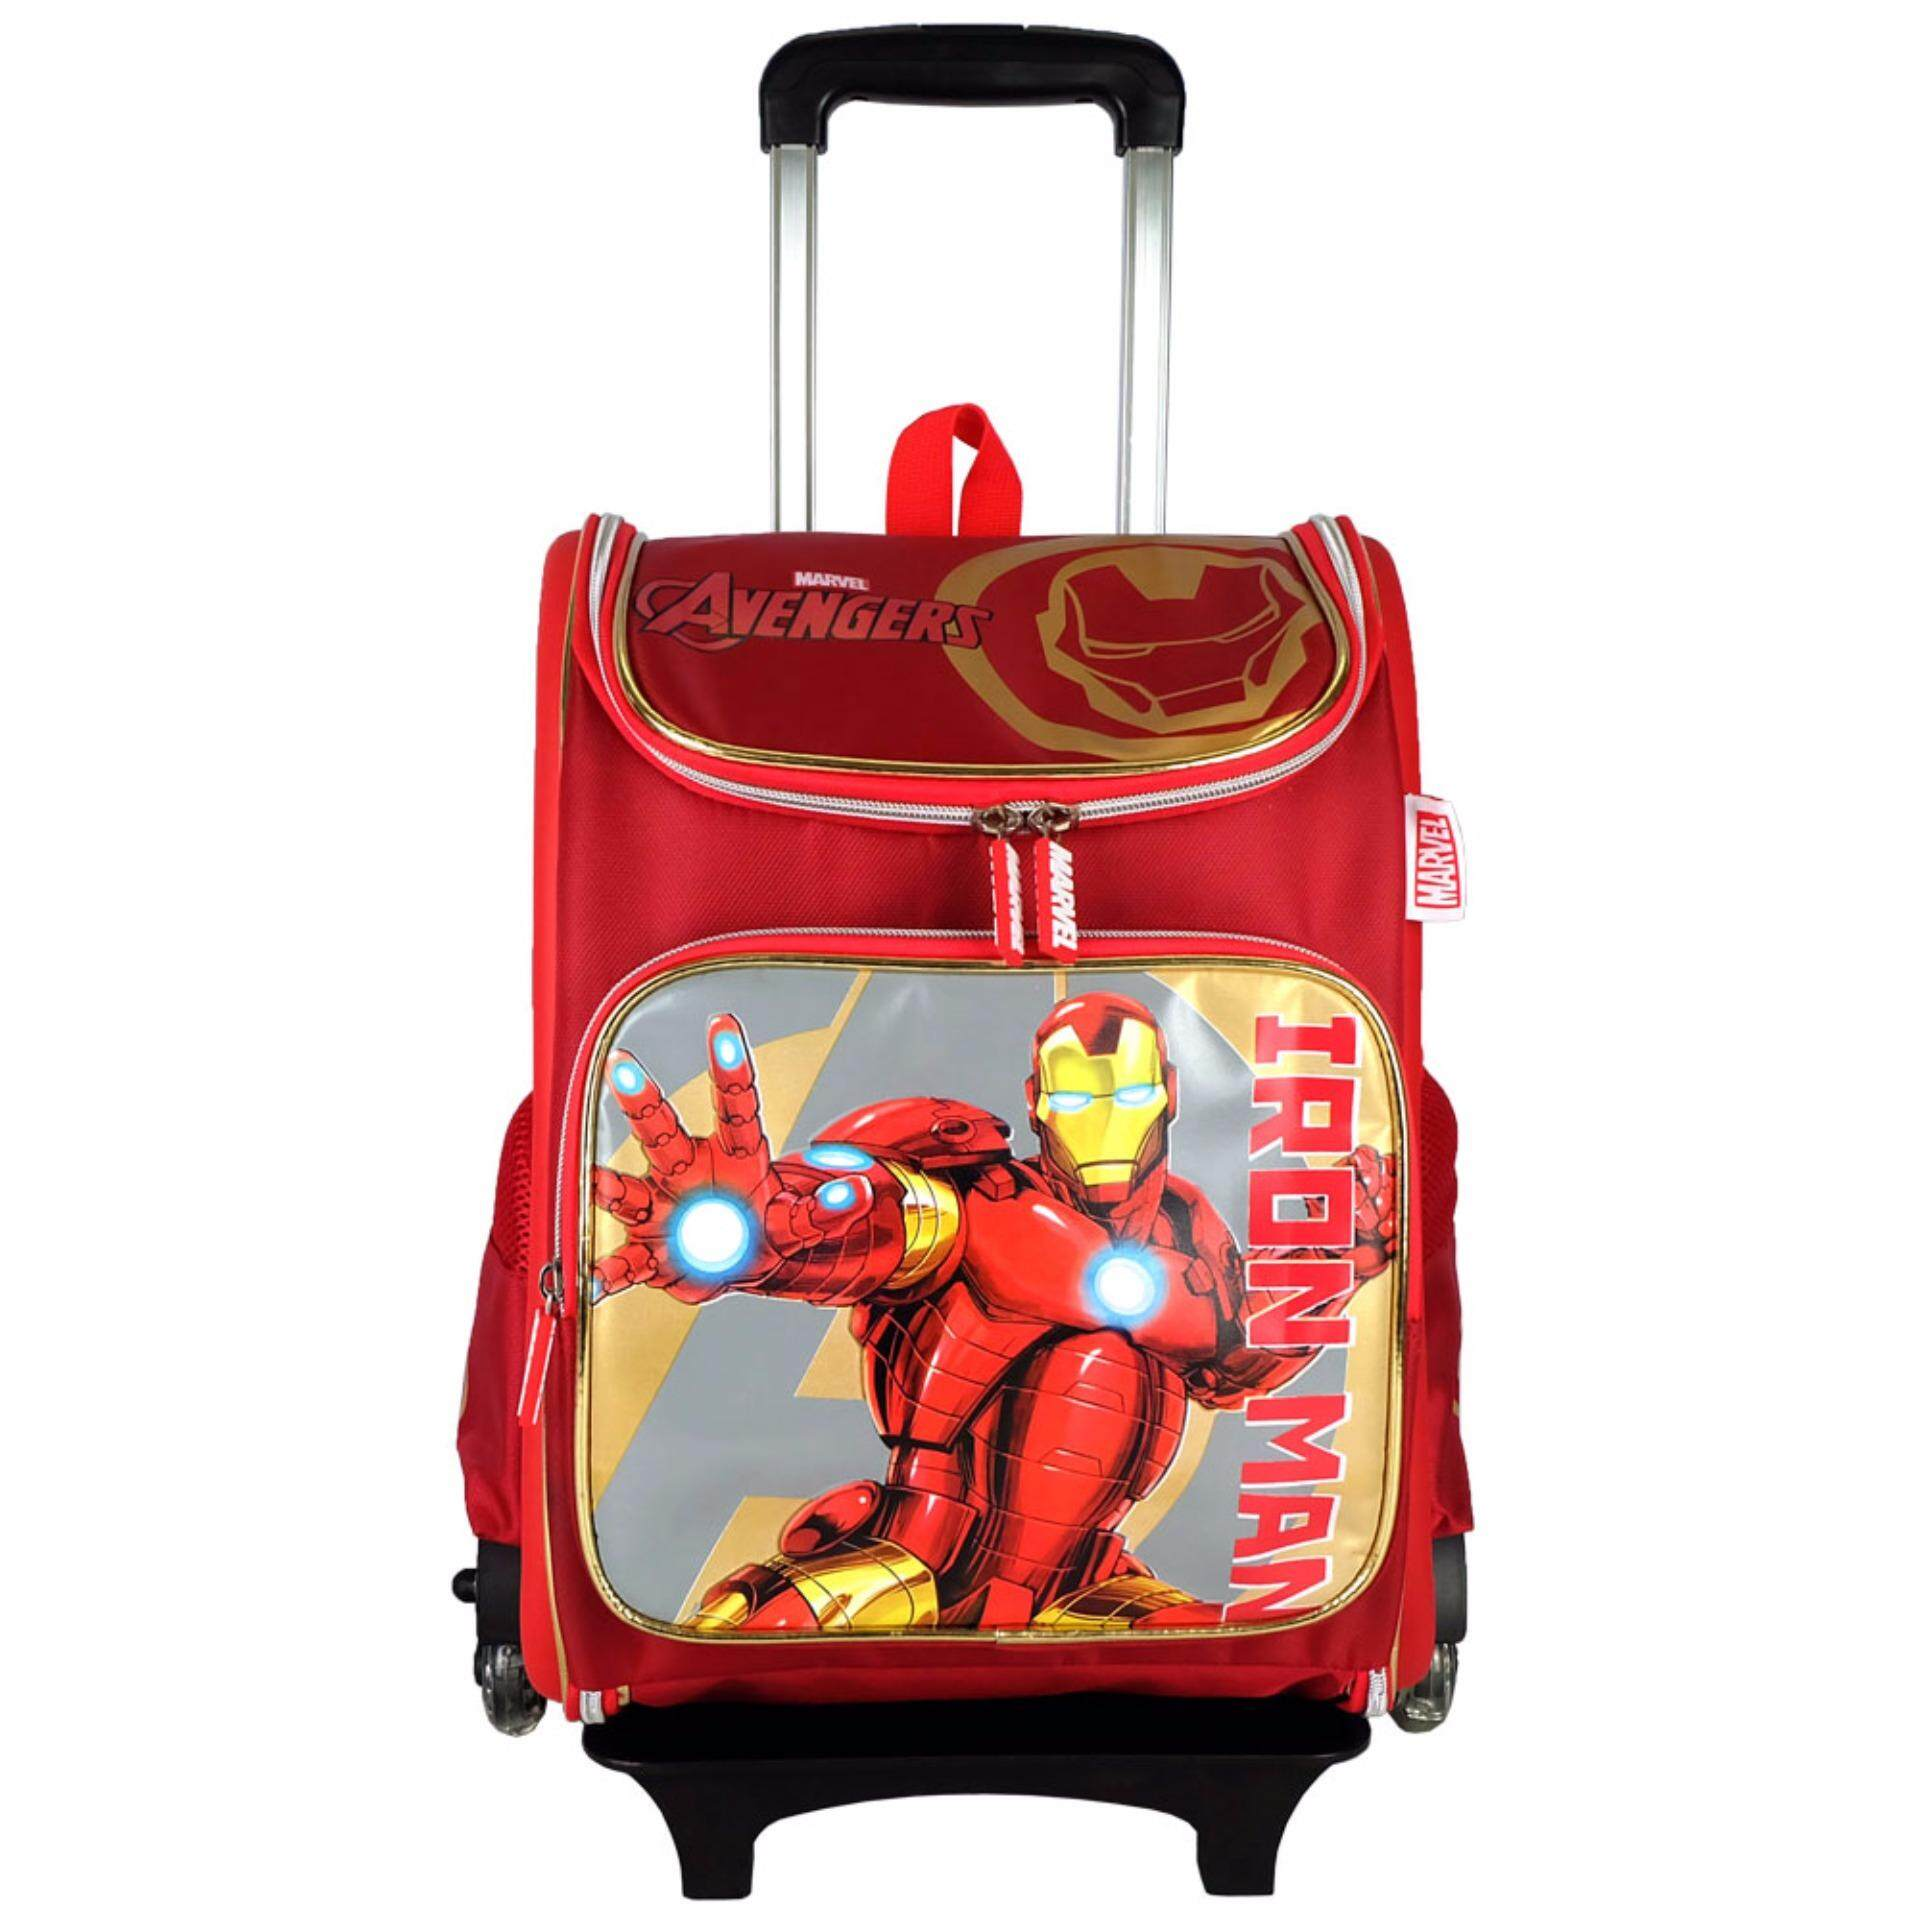 Marvel Avengers VAE1727R+HW 16 Inch EVA LED TRIO Roller Trolley School Bag- Iron Man